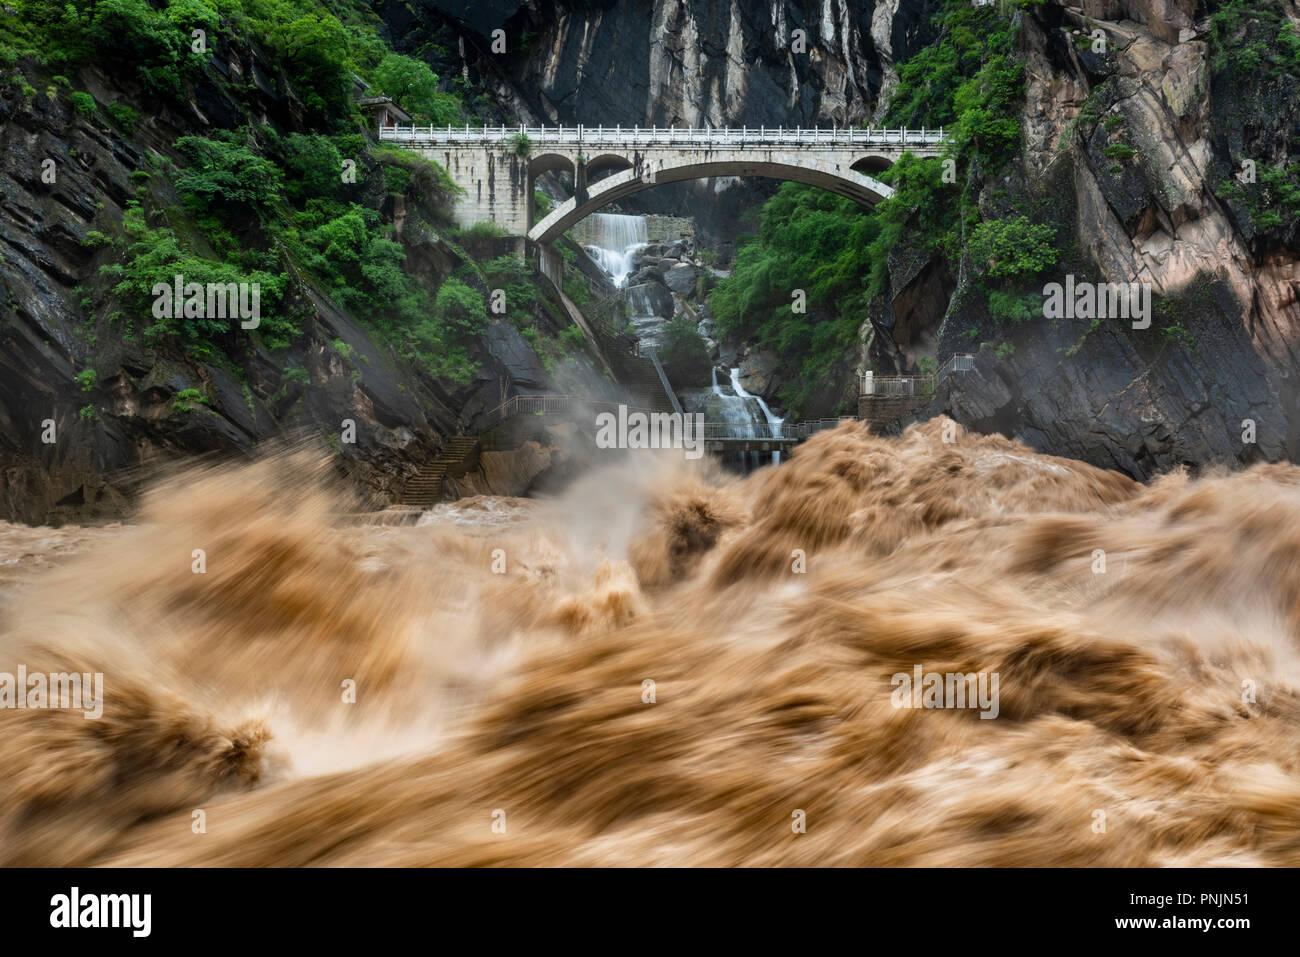 Tiger Leaping Gorge is a scenic gorge on the Jinsha River, a primary tributary of the upper Yangtze River, near Lijiang,Yunnan,China. - Stock Image